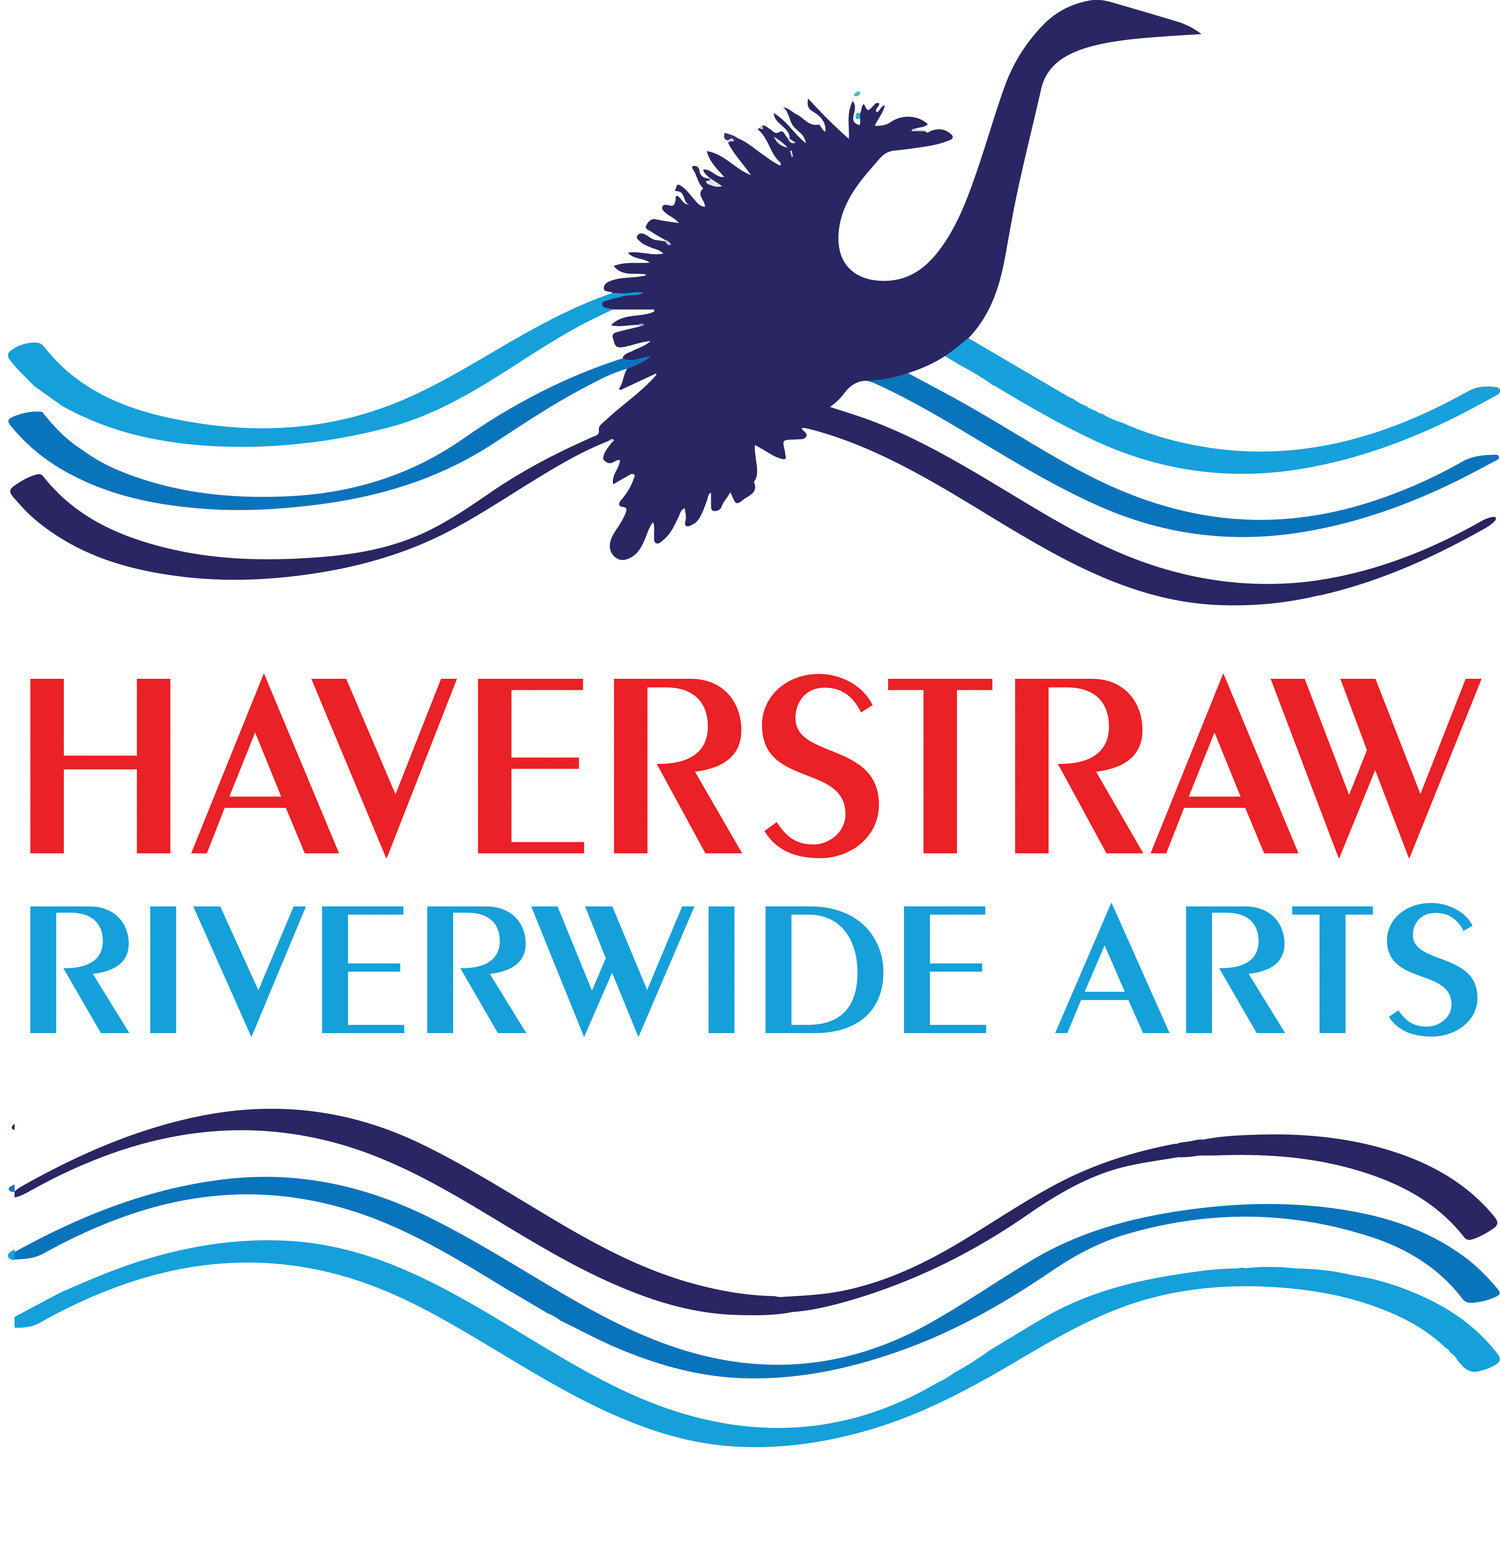 Haverstraw Riverwide Arts